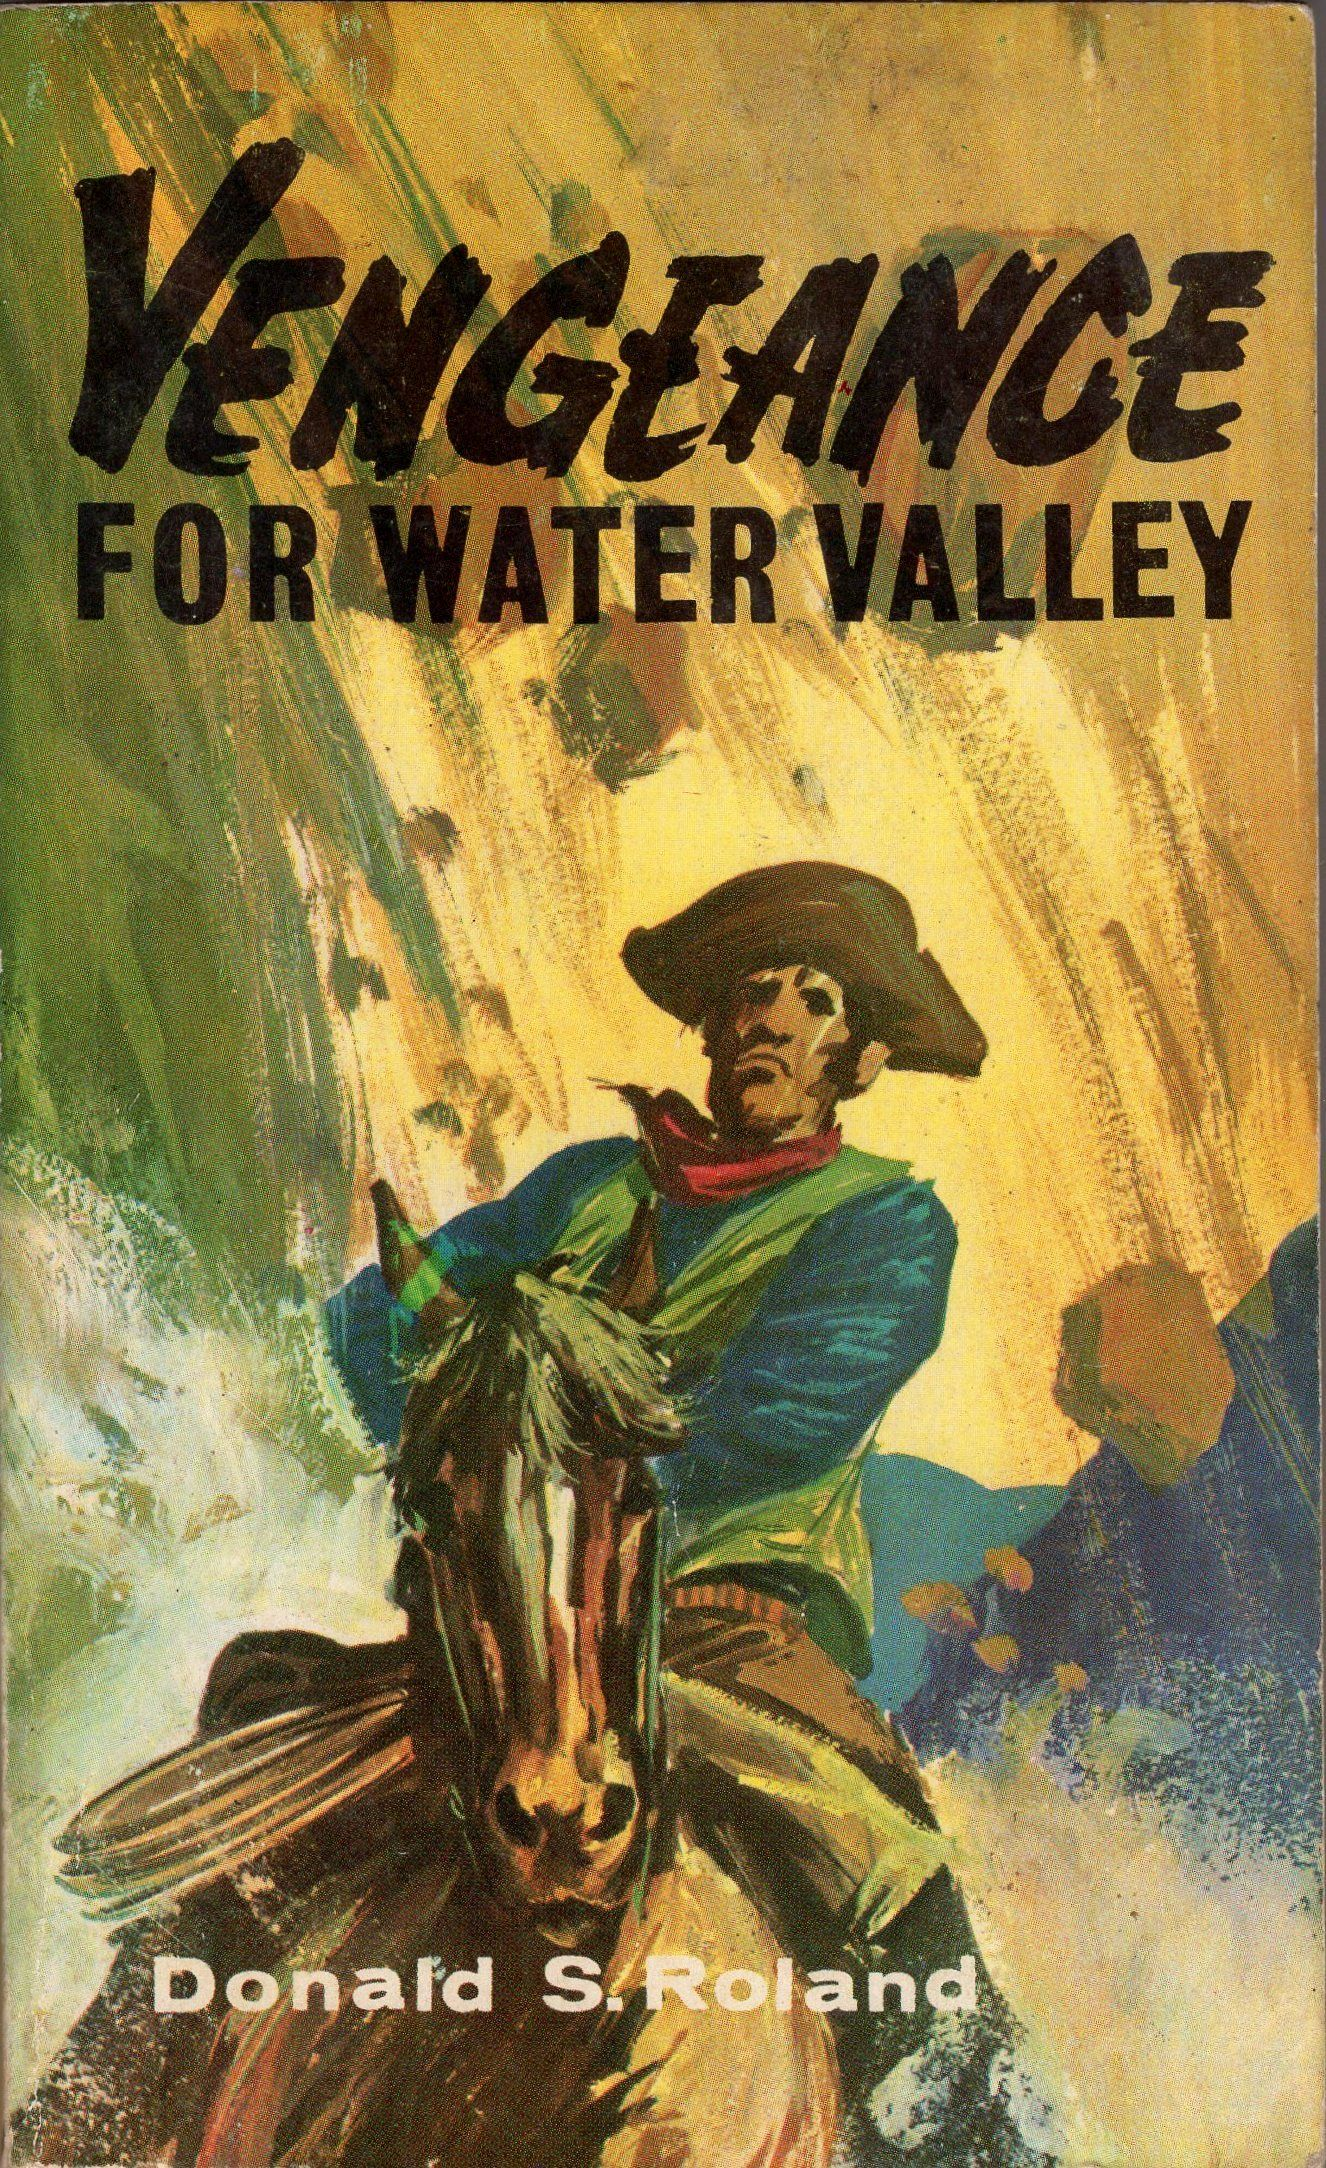 Vengeance for Water Valley by Donald Roland